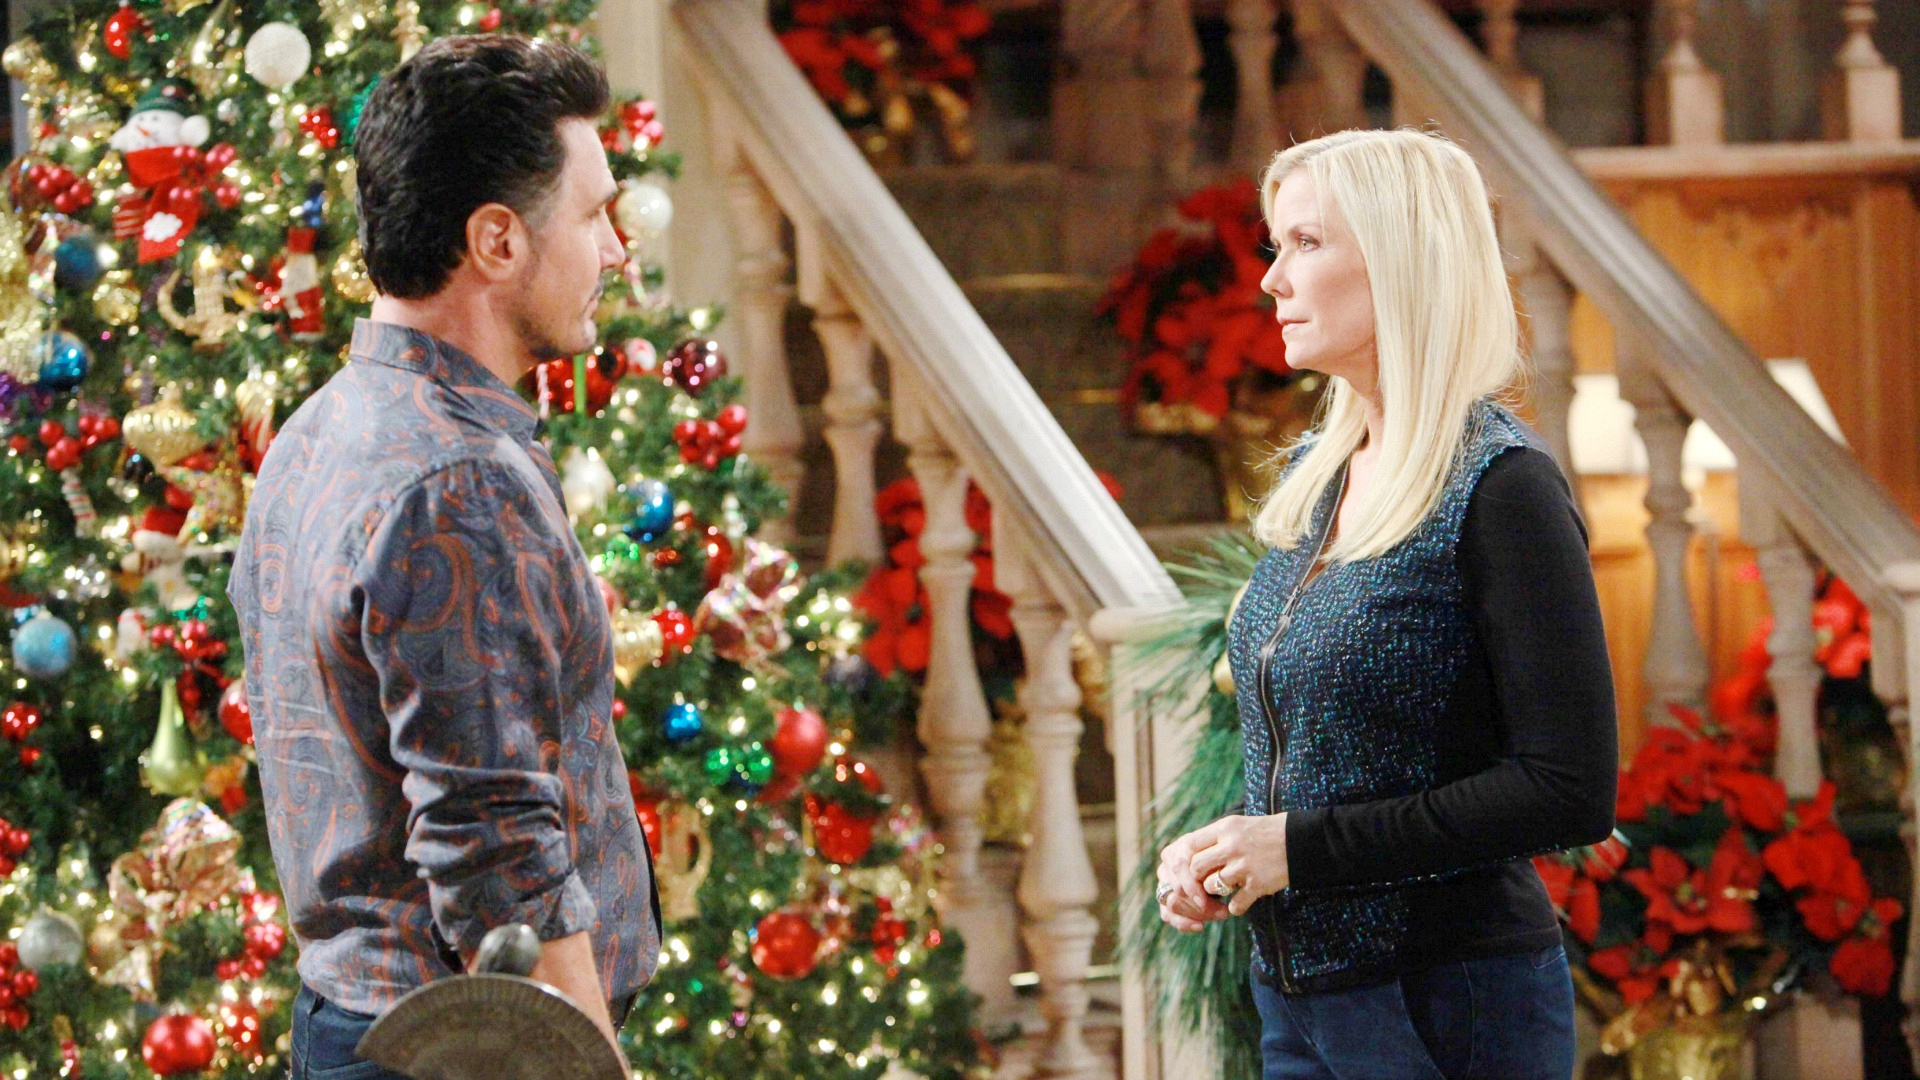 Bill's holiday is dampened when he sees Ridge's gift to Brooke.